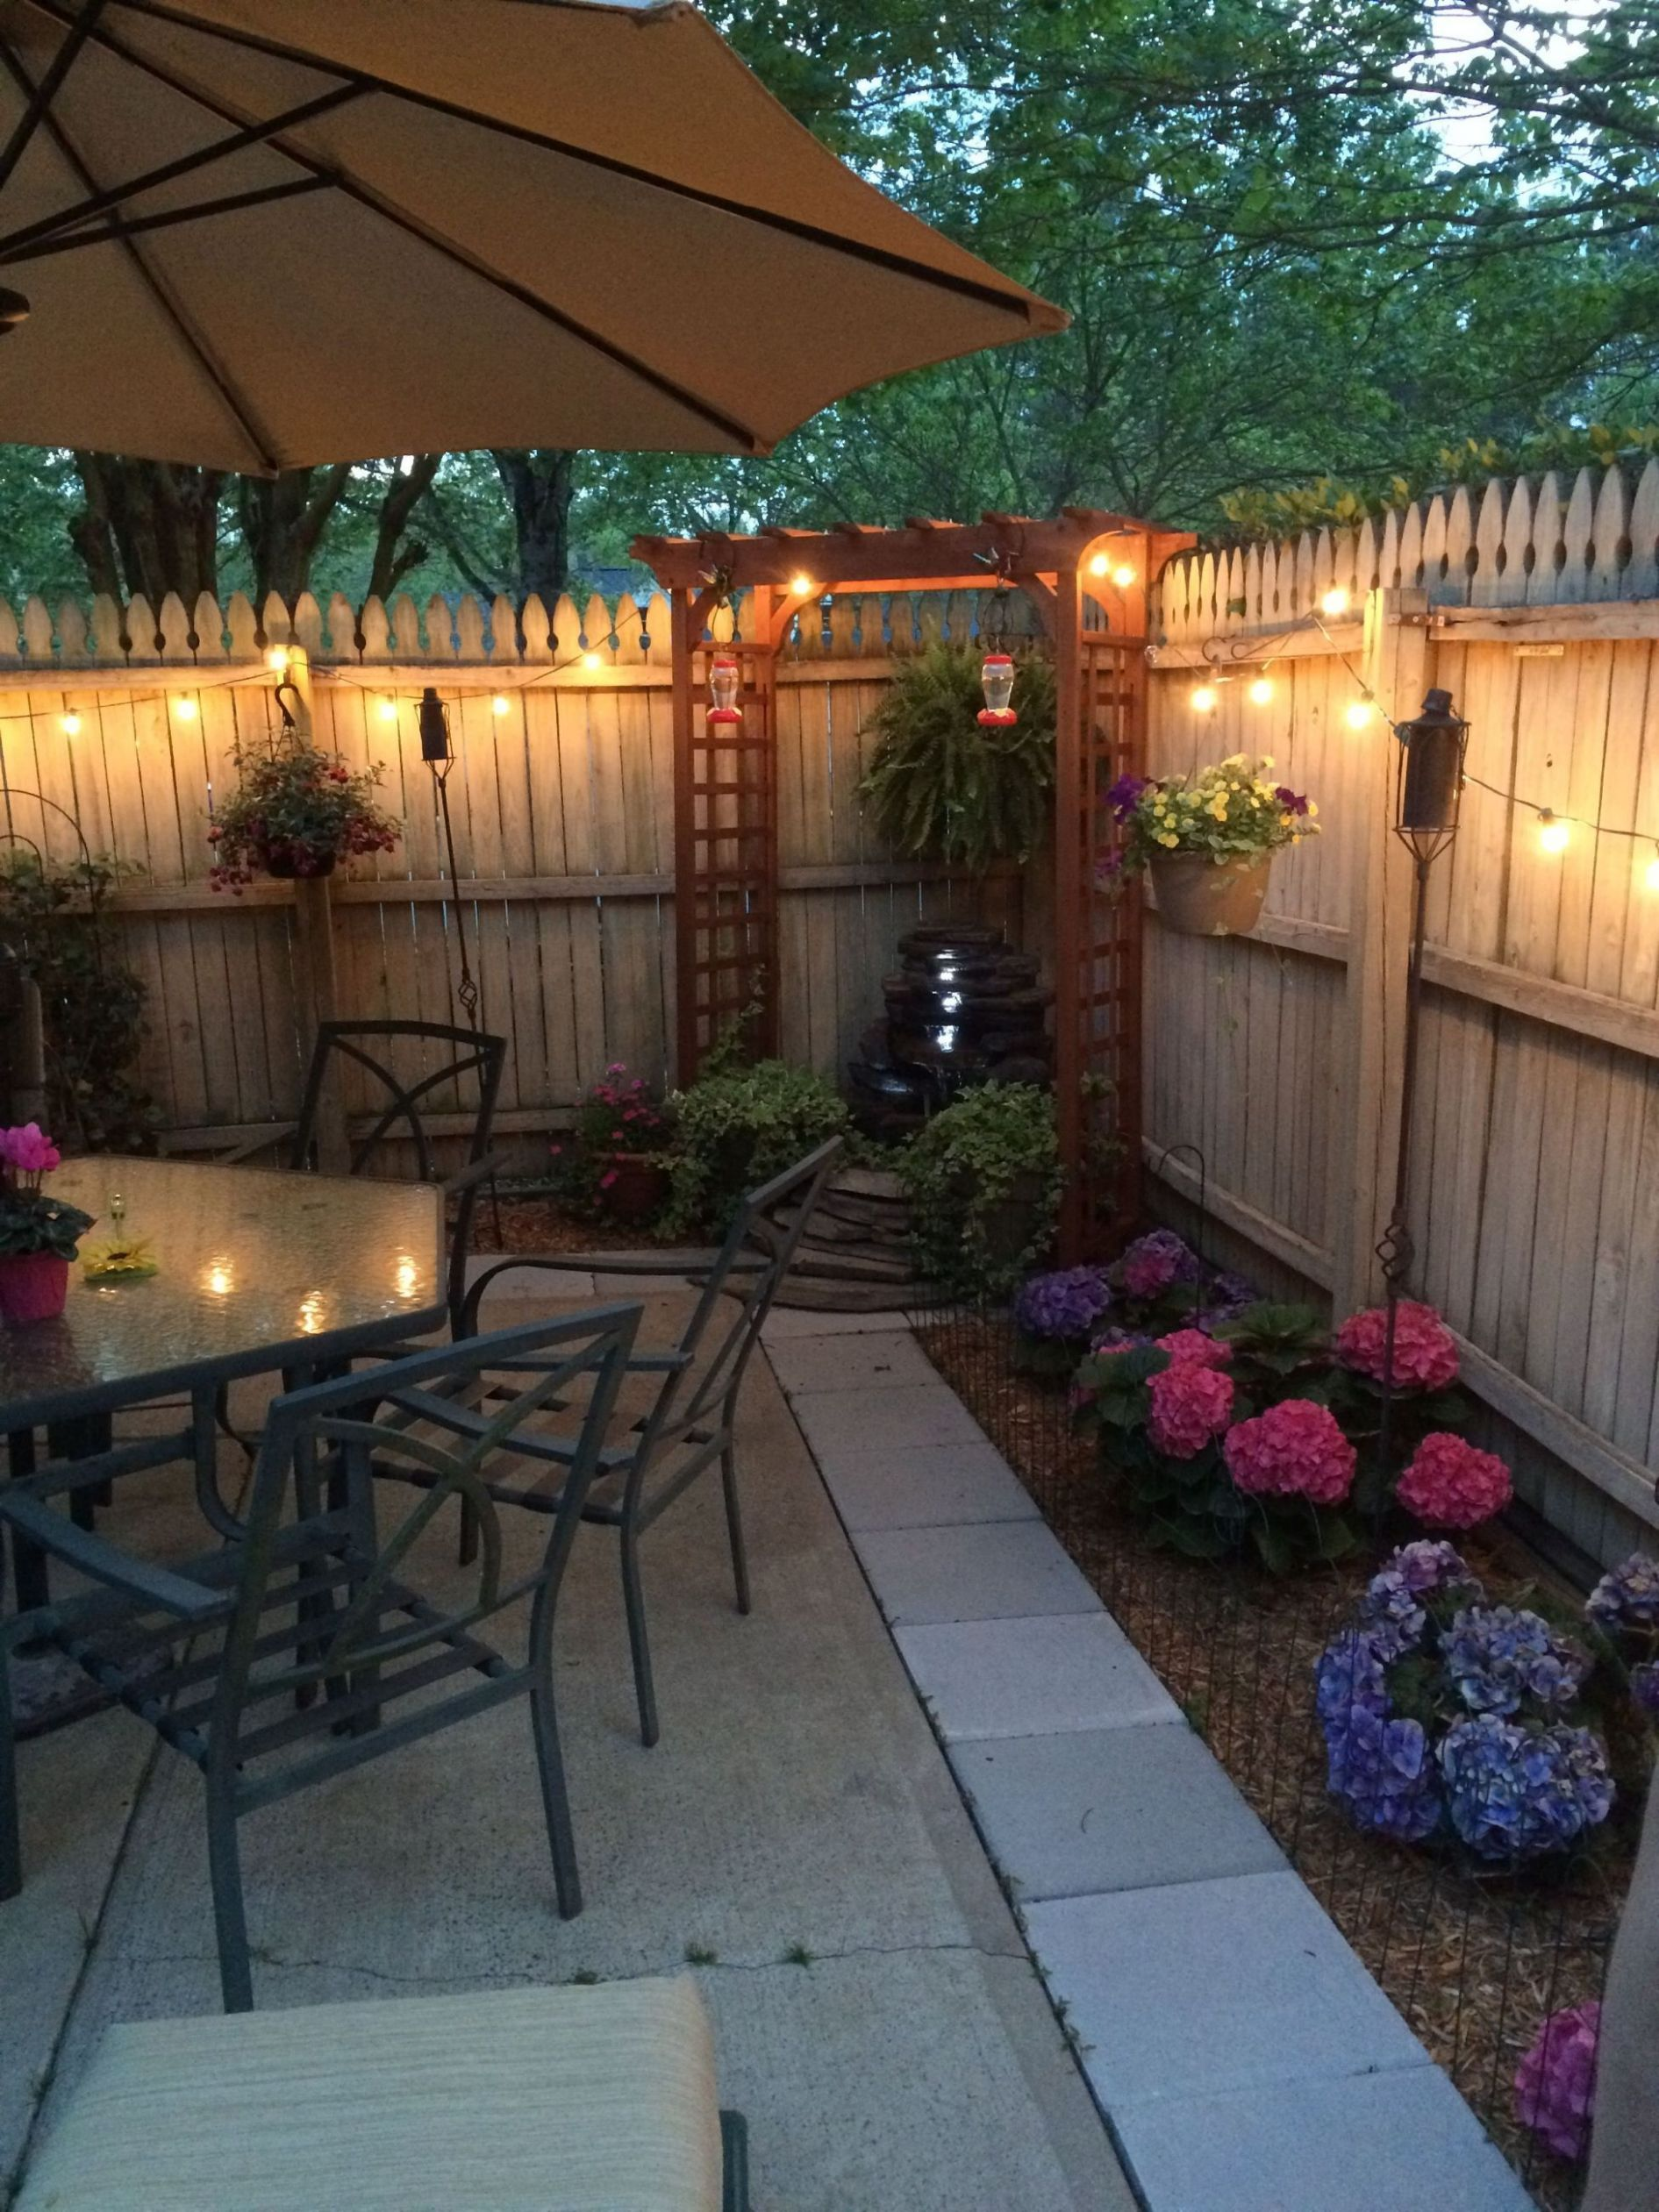 9 Backyard Patio Ideas That Will Amaze & Inspire You - Pictures ...